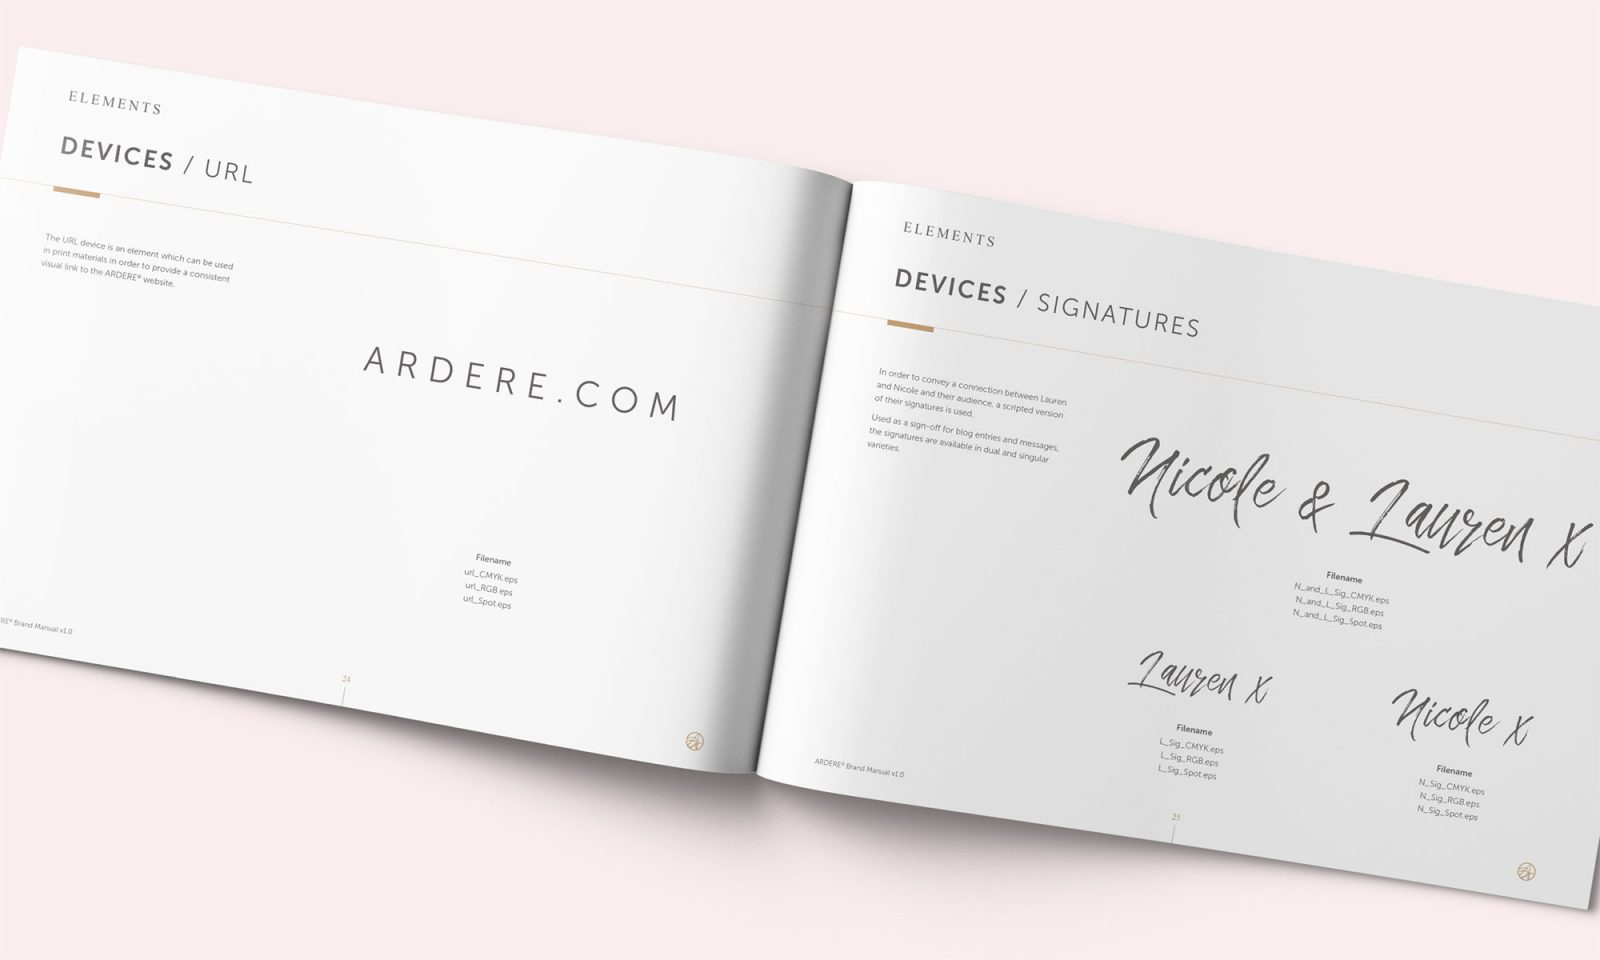 Ardere brand manual spread showing signoff and url usage